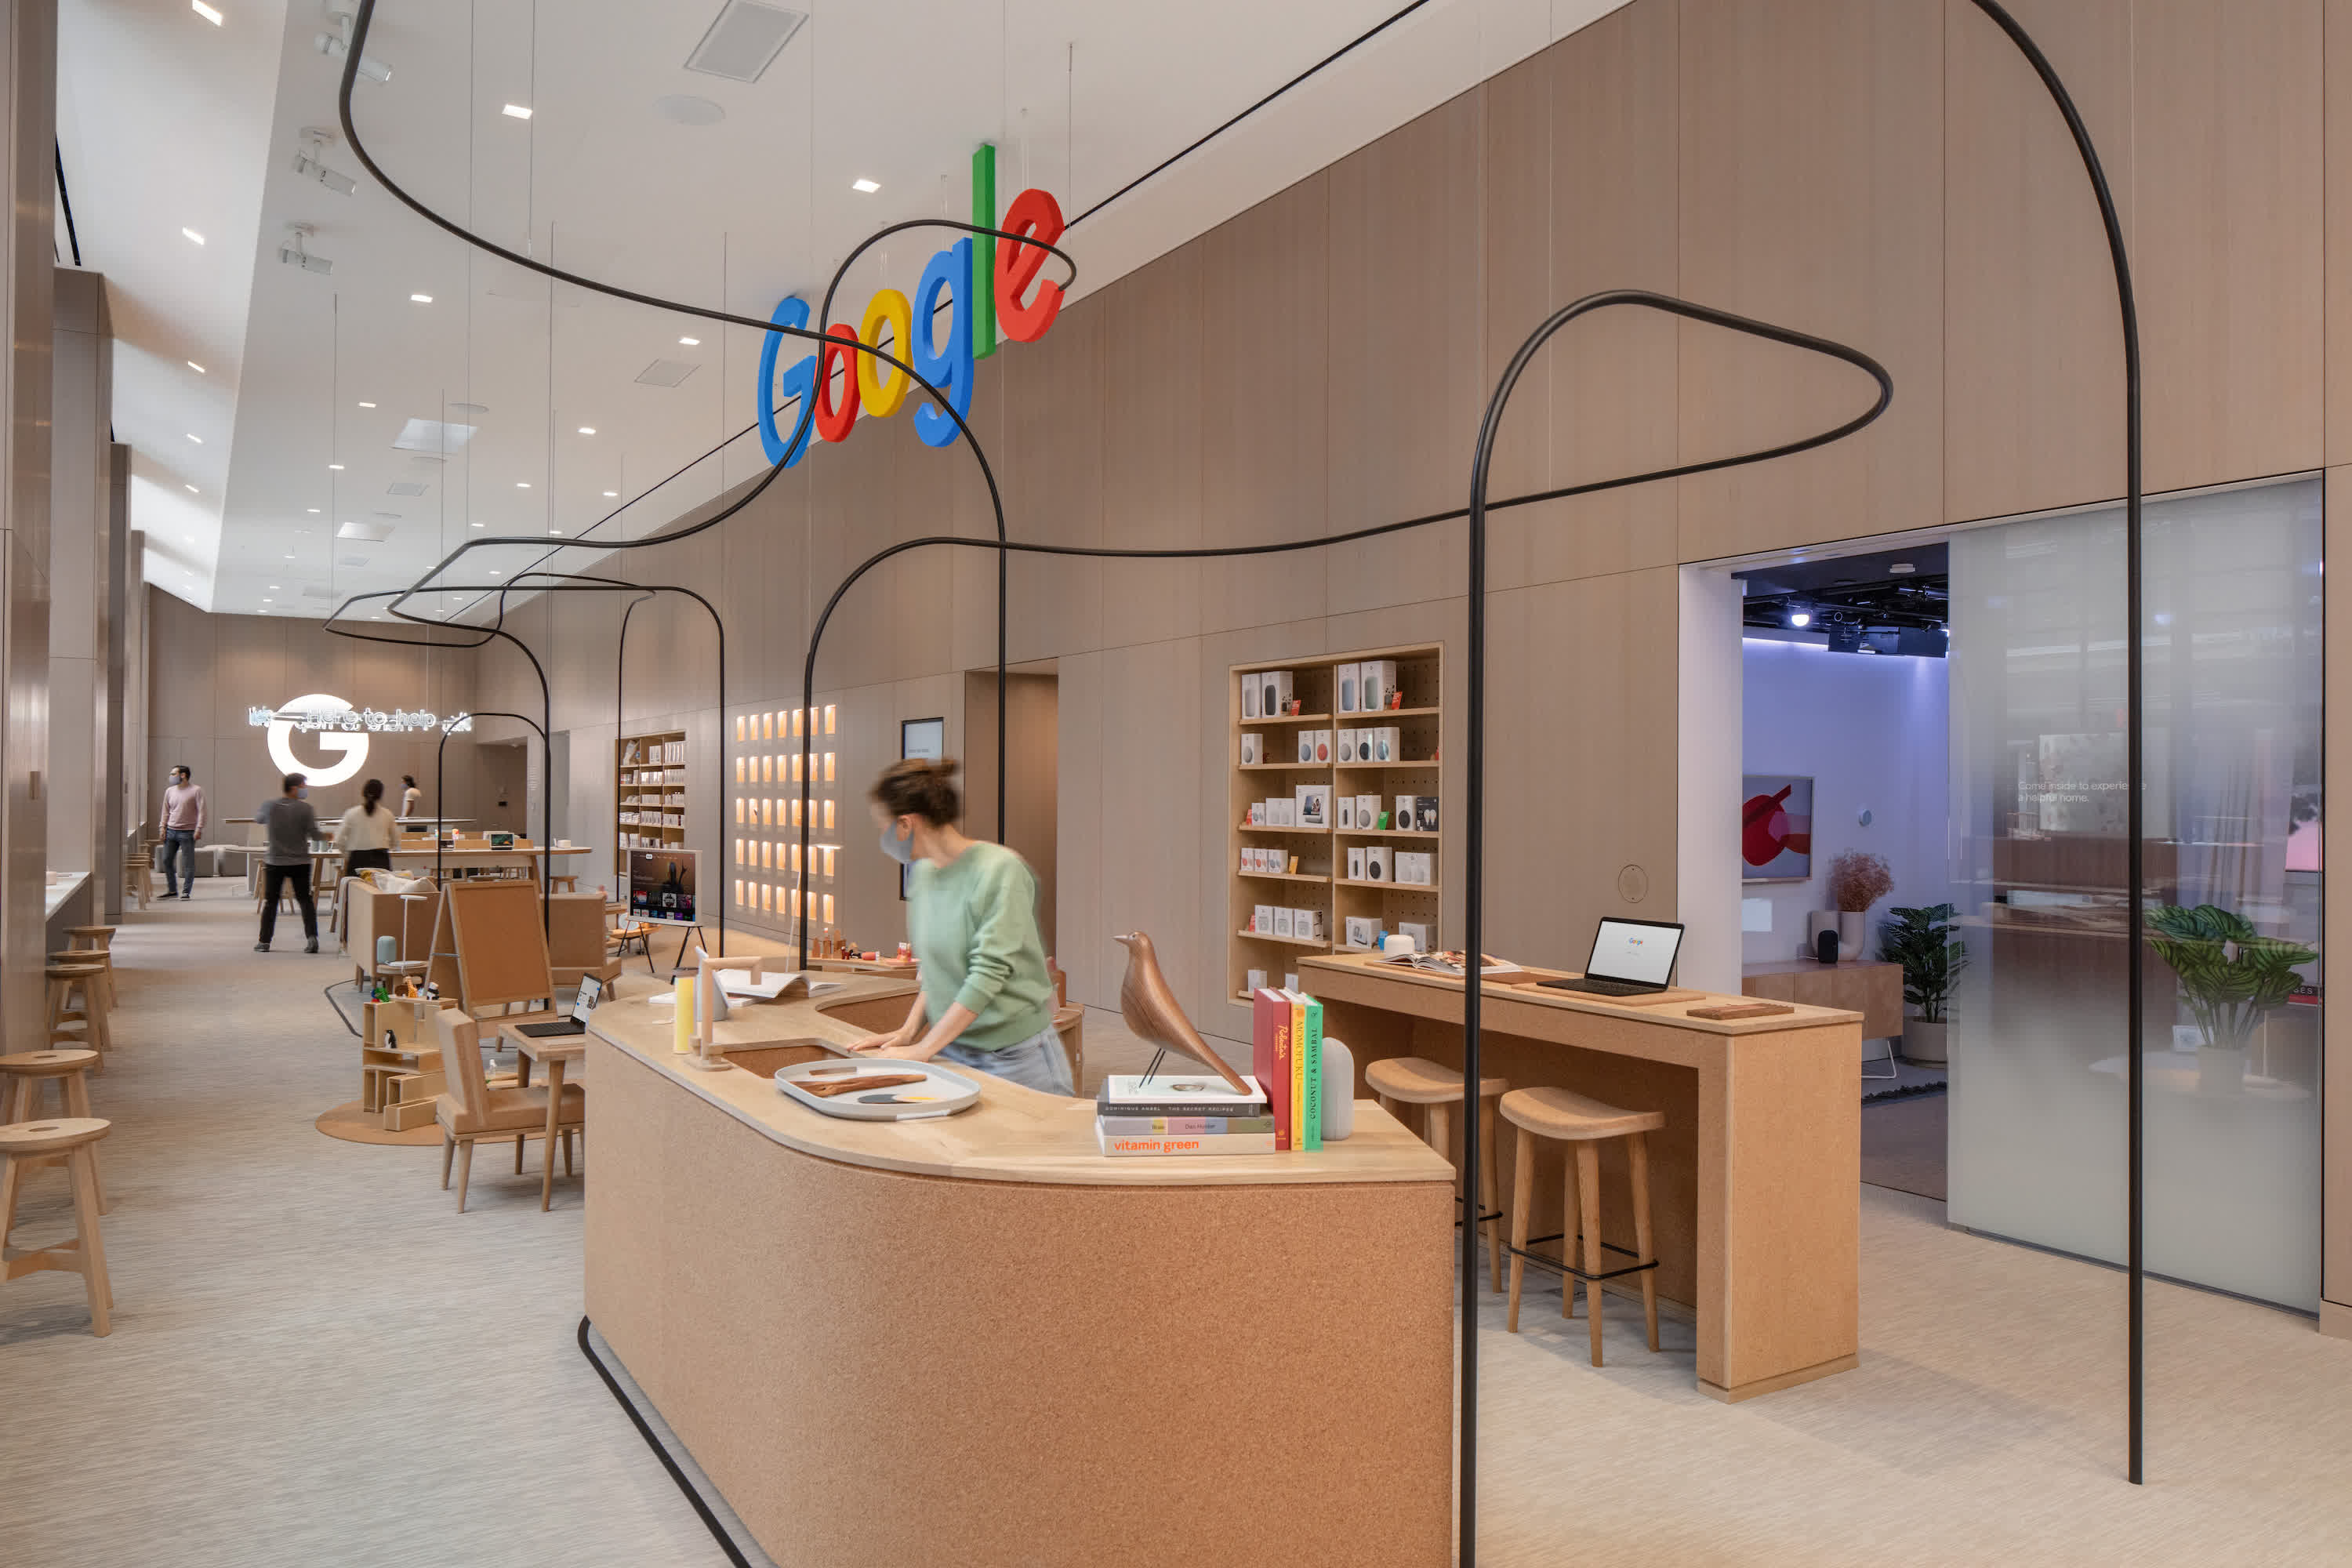 Google's First Retail Store Opens Tomorrow in New York City